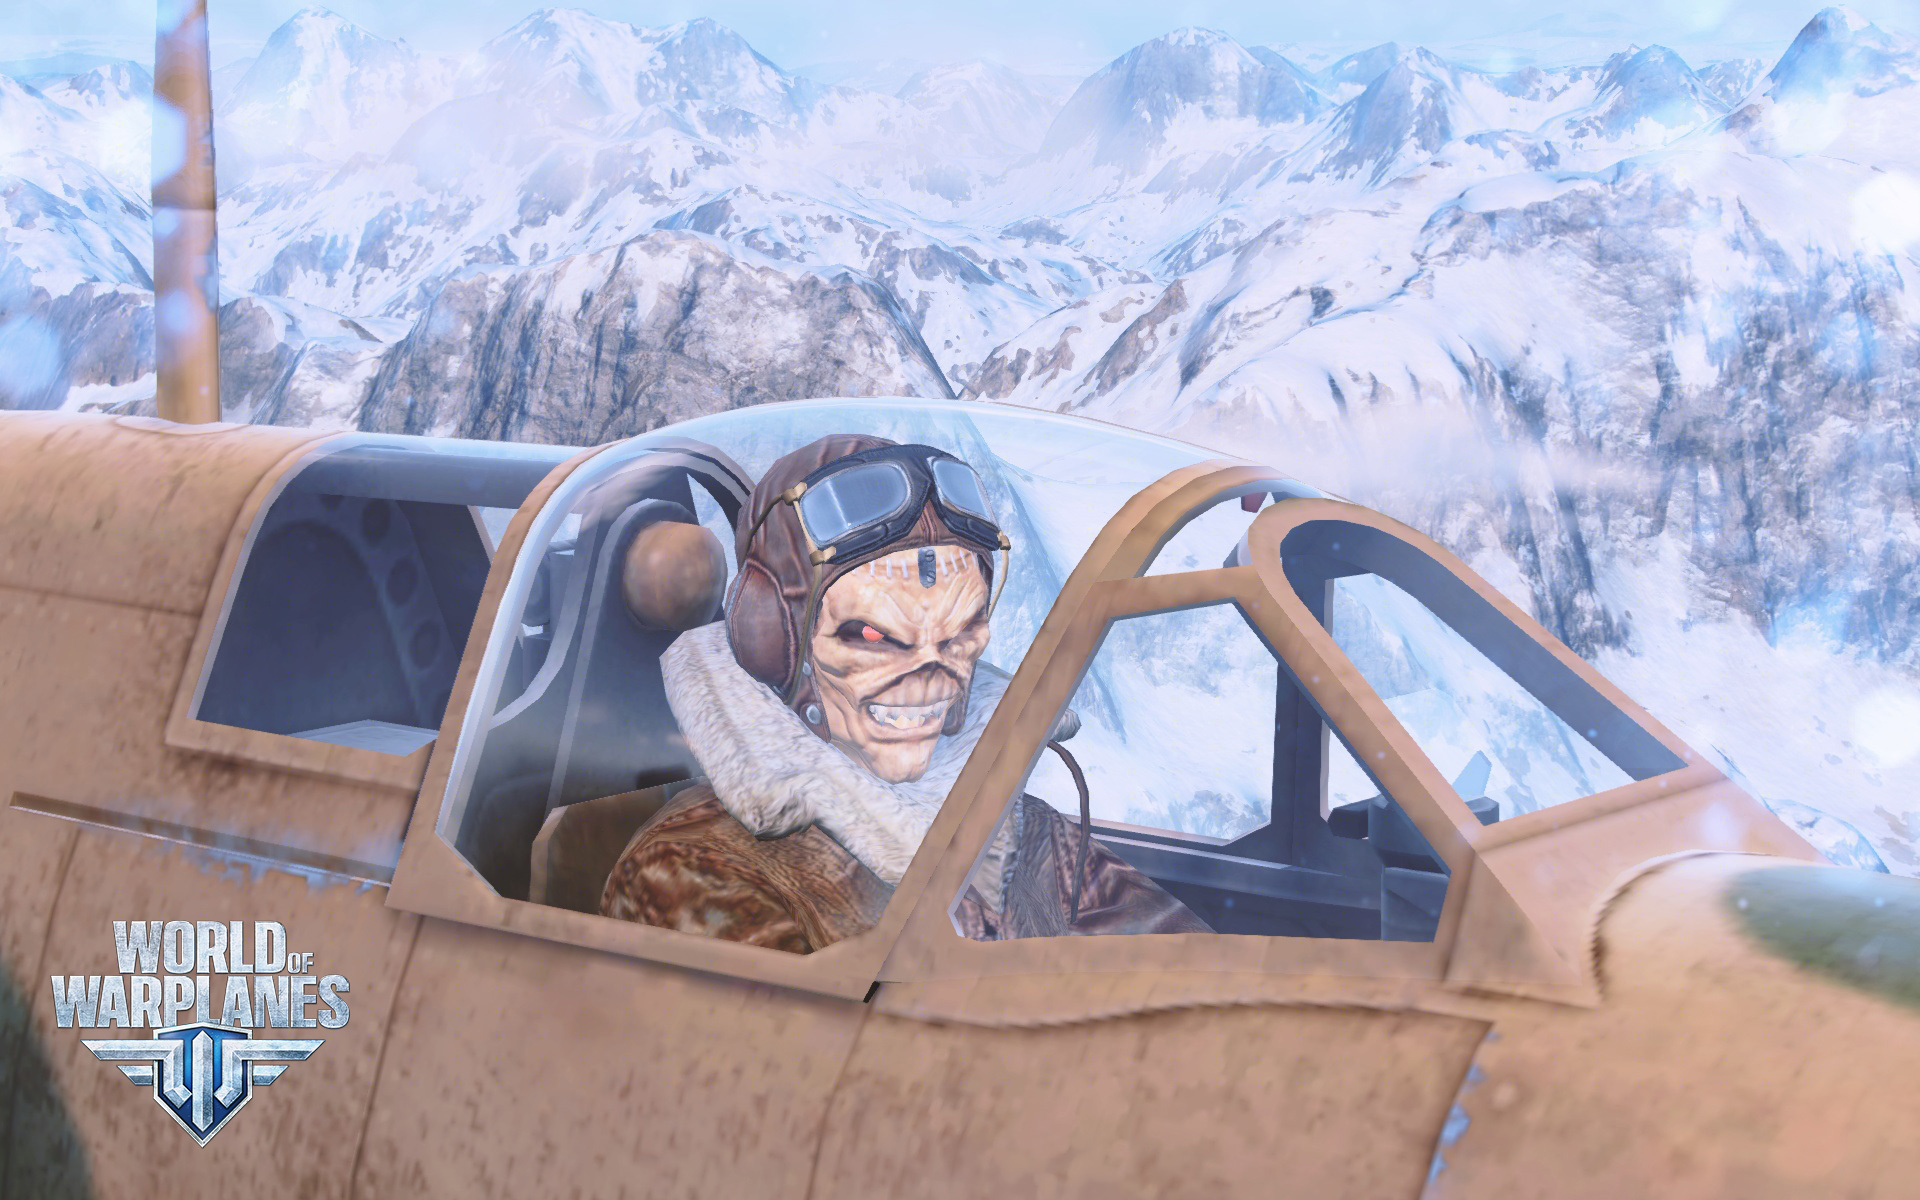 World of Warplanes - eddie